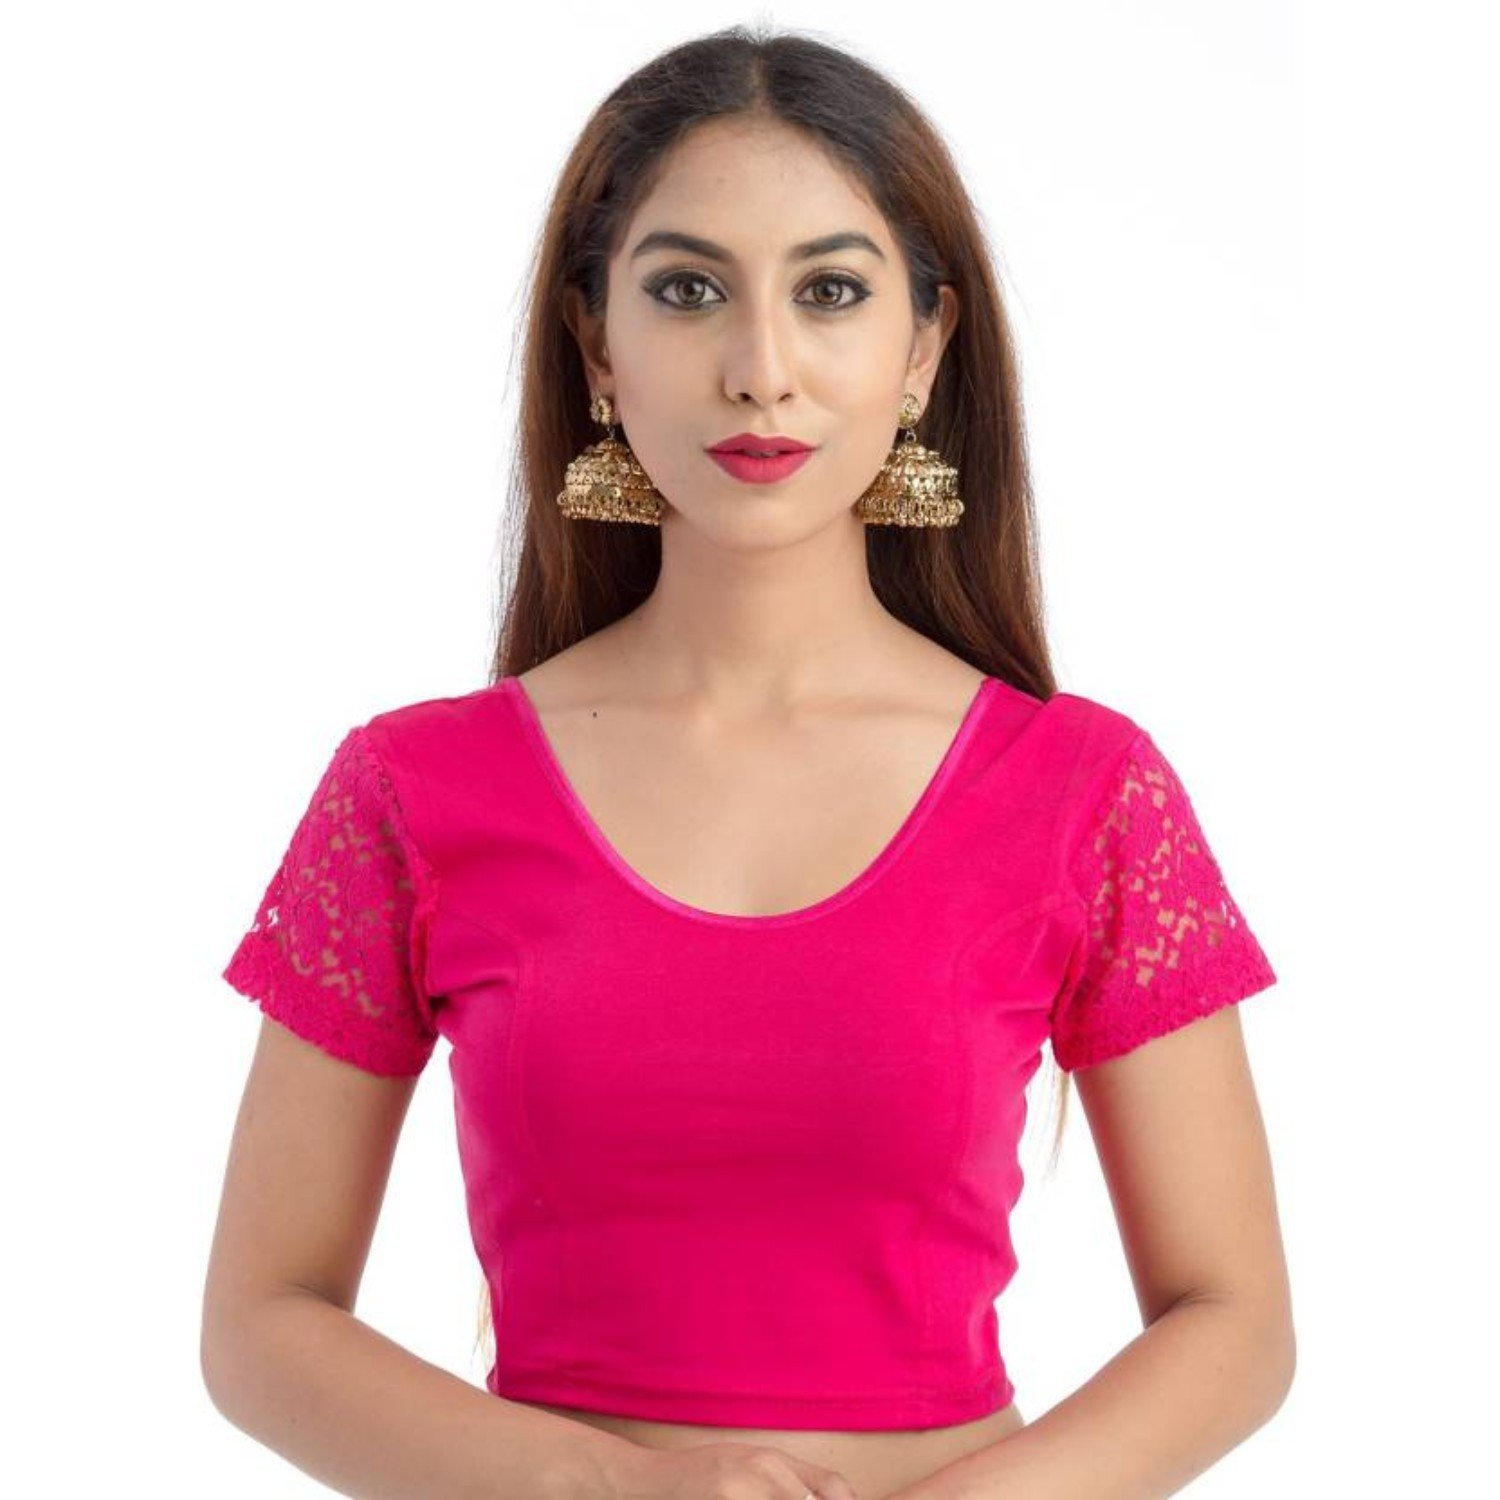 56eab2aa78e25 ... fressia fabrics women s stretchable readymade saree blouse crop top  choli pack ...